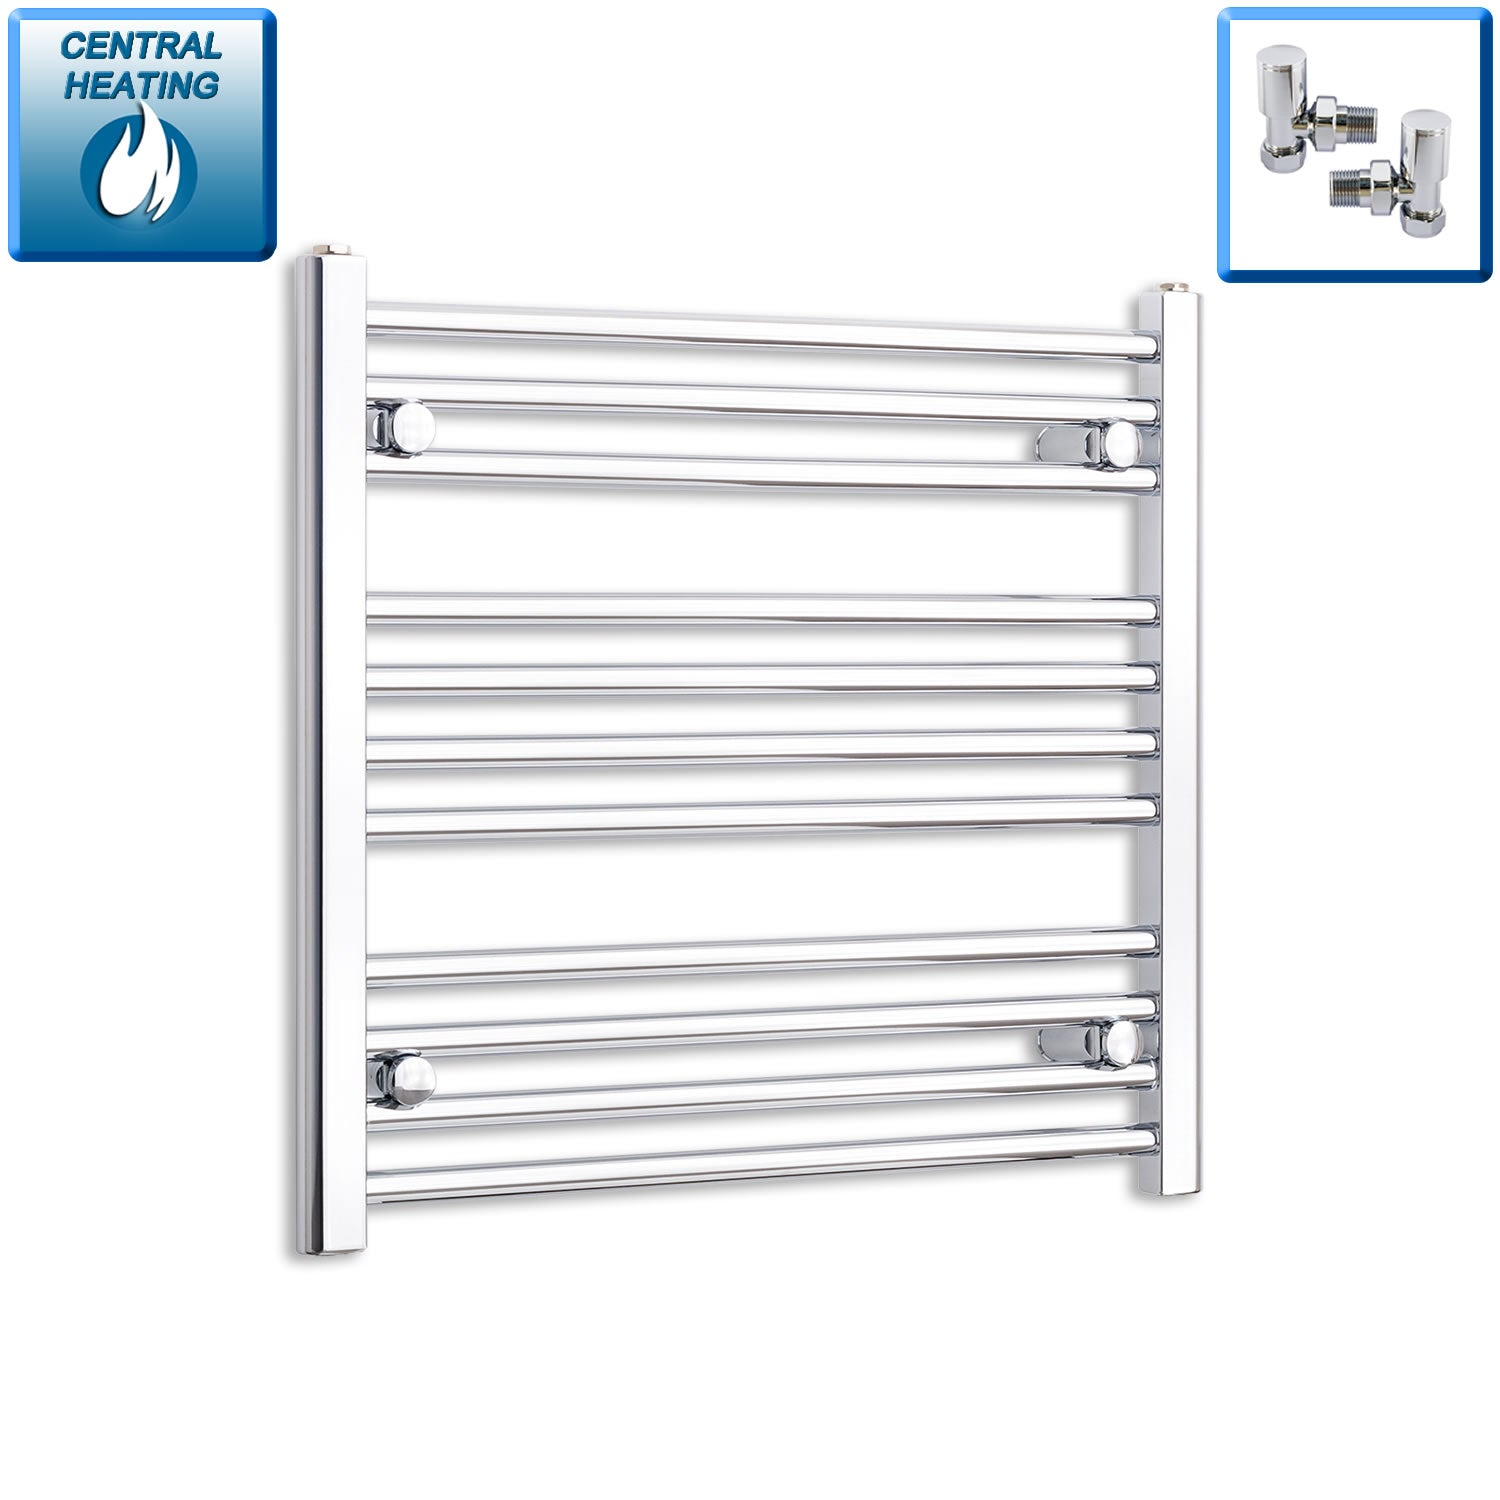 600mm Wide 600mm High Chrome Towel Rail Radiator With Angled Valve